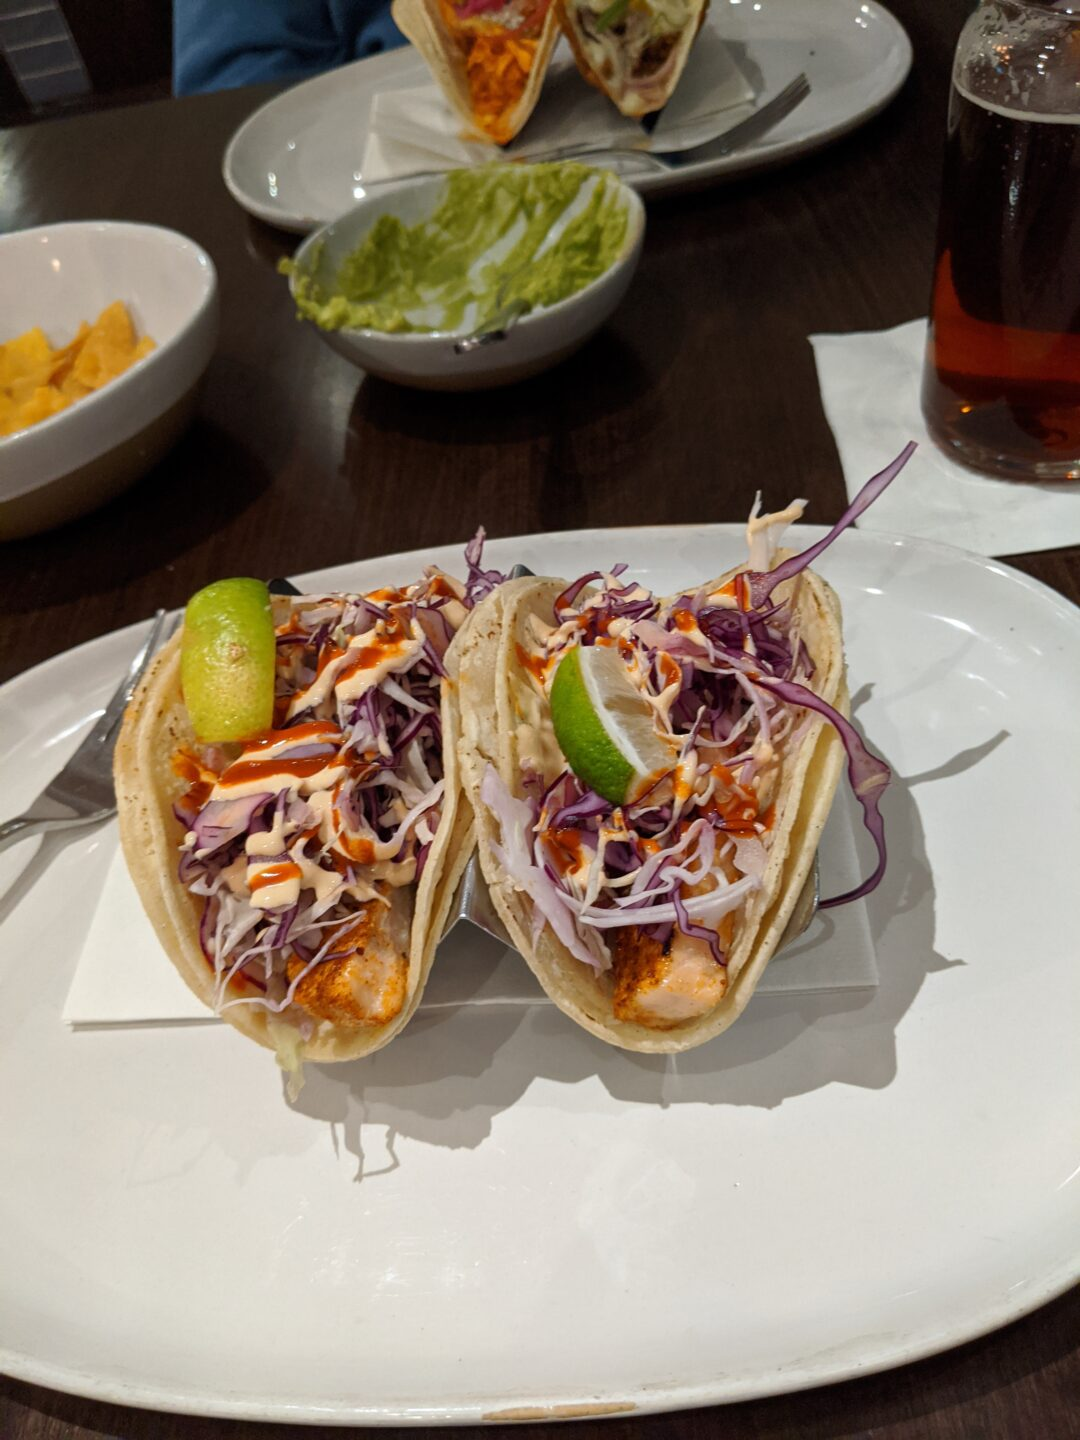 Two fish tacos on a plate.